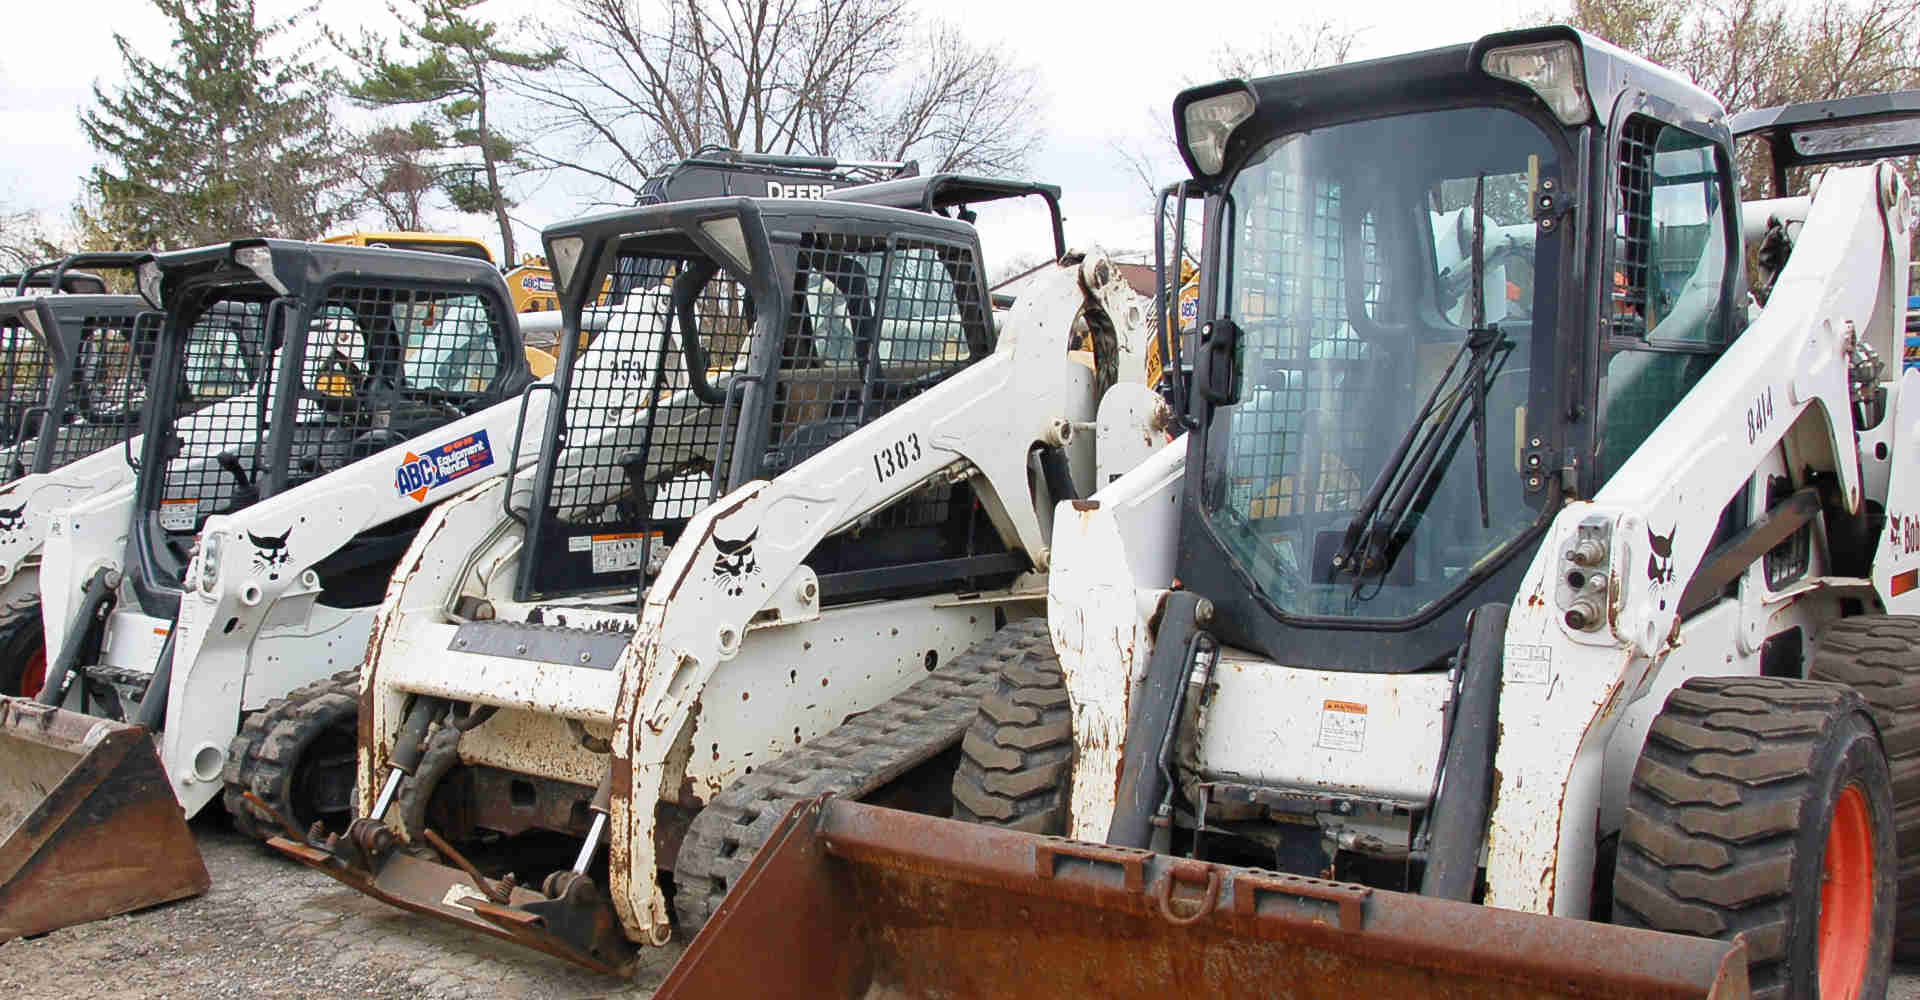 Rent Construction Equipment in Catonsville MD, Jessup, Towson, Baltimore-Columbia-Towson Metro